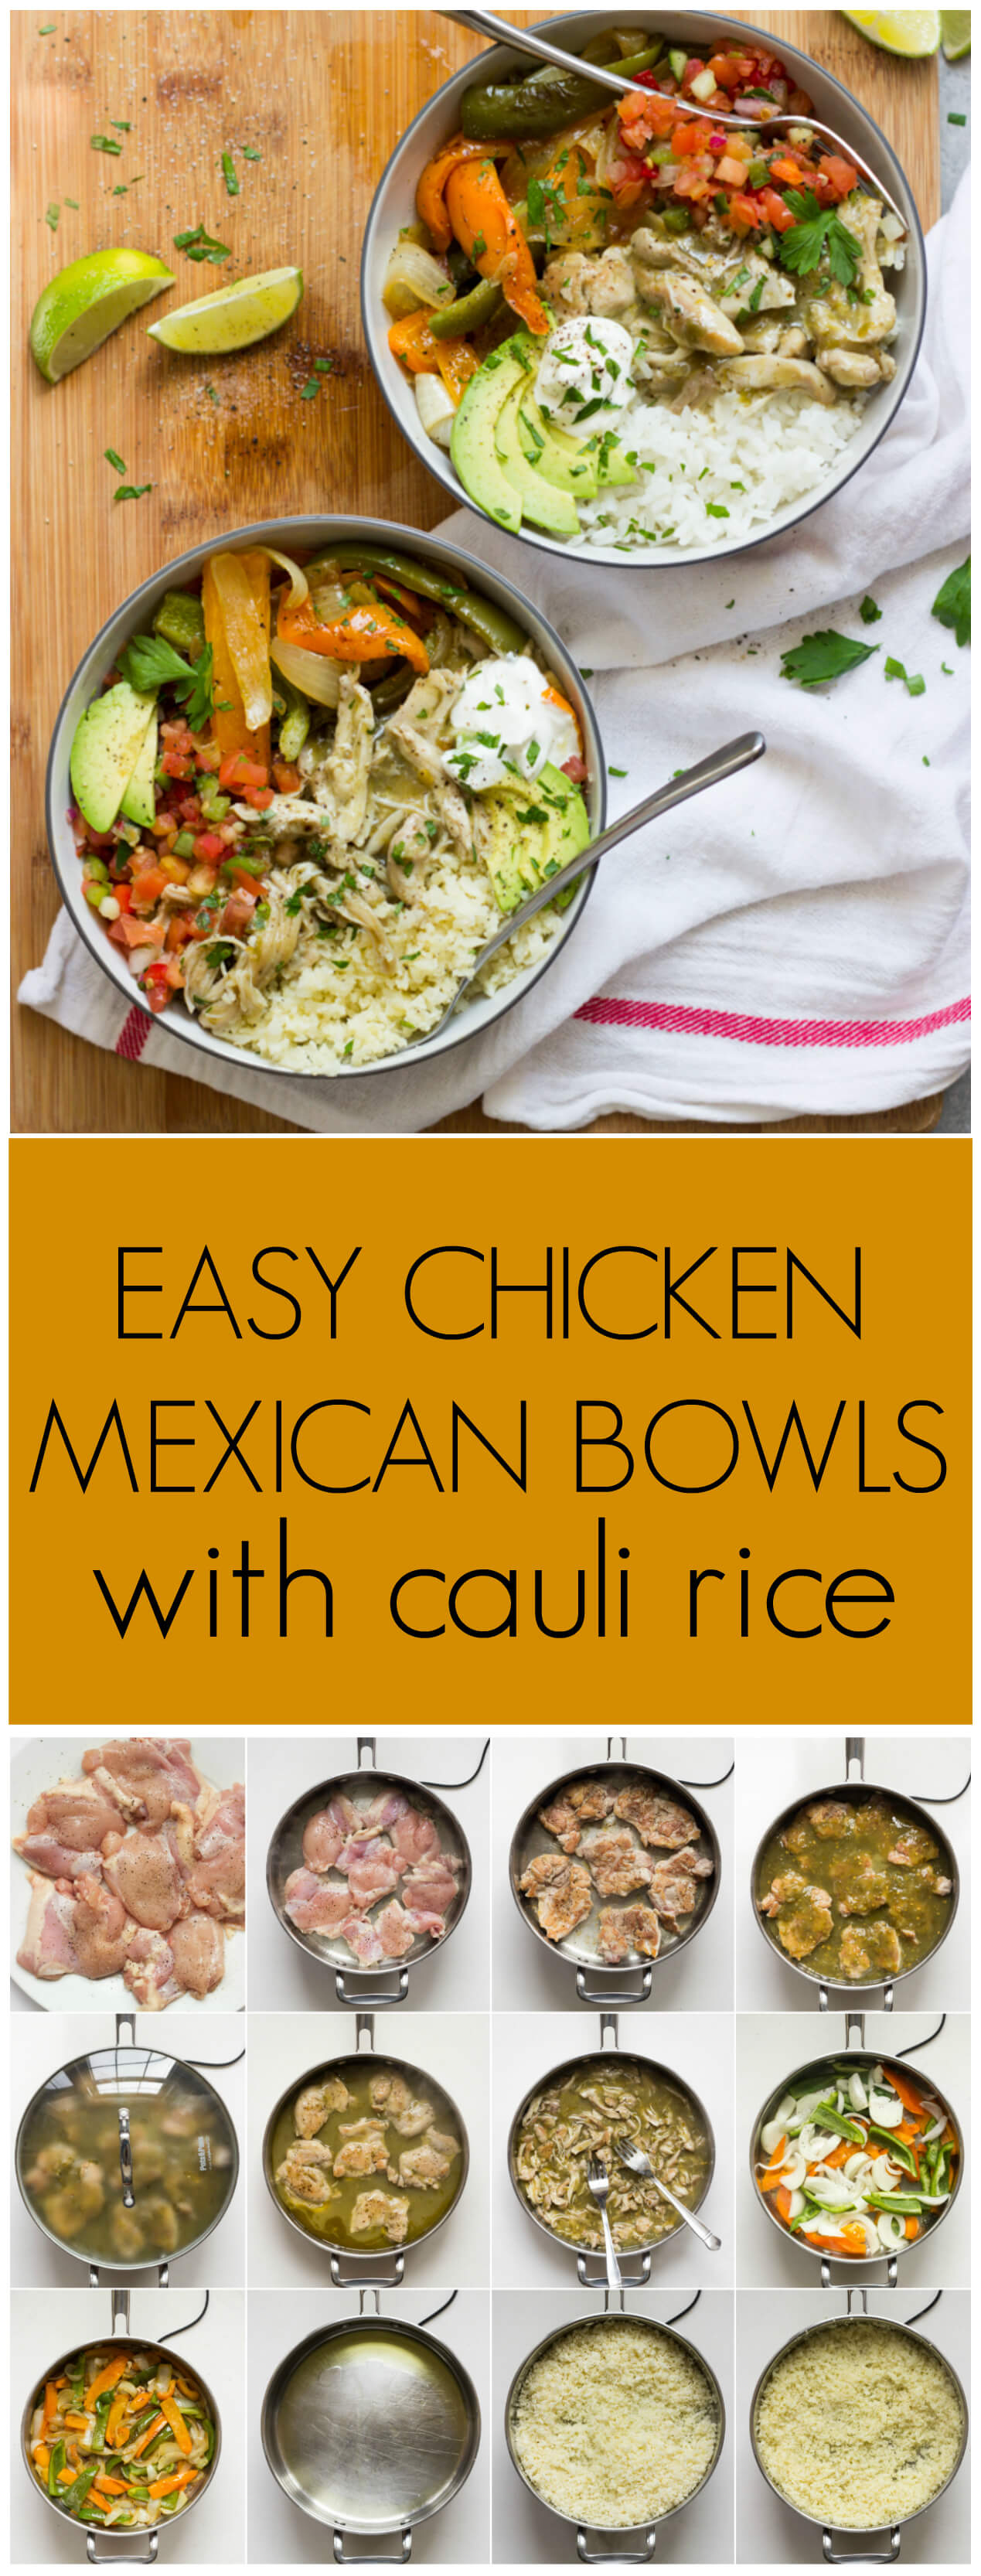 Easy chicken mexican bowls 2 ways easy chicken mexican bowls 2 ways easy skillet shredded chicken served over forumfinder